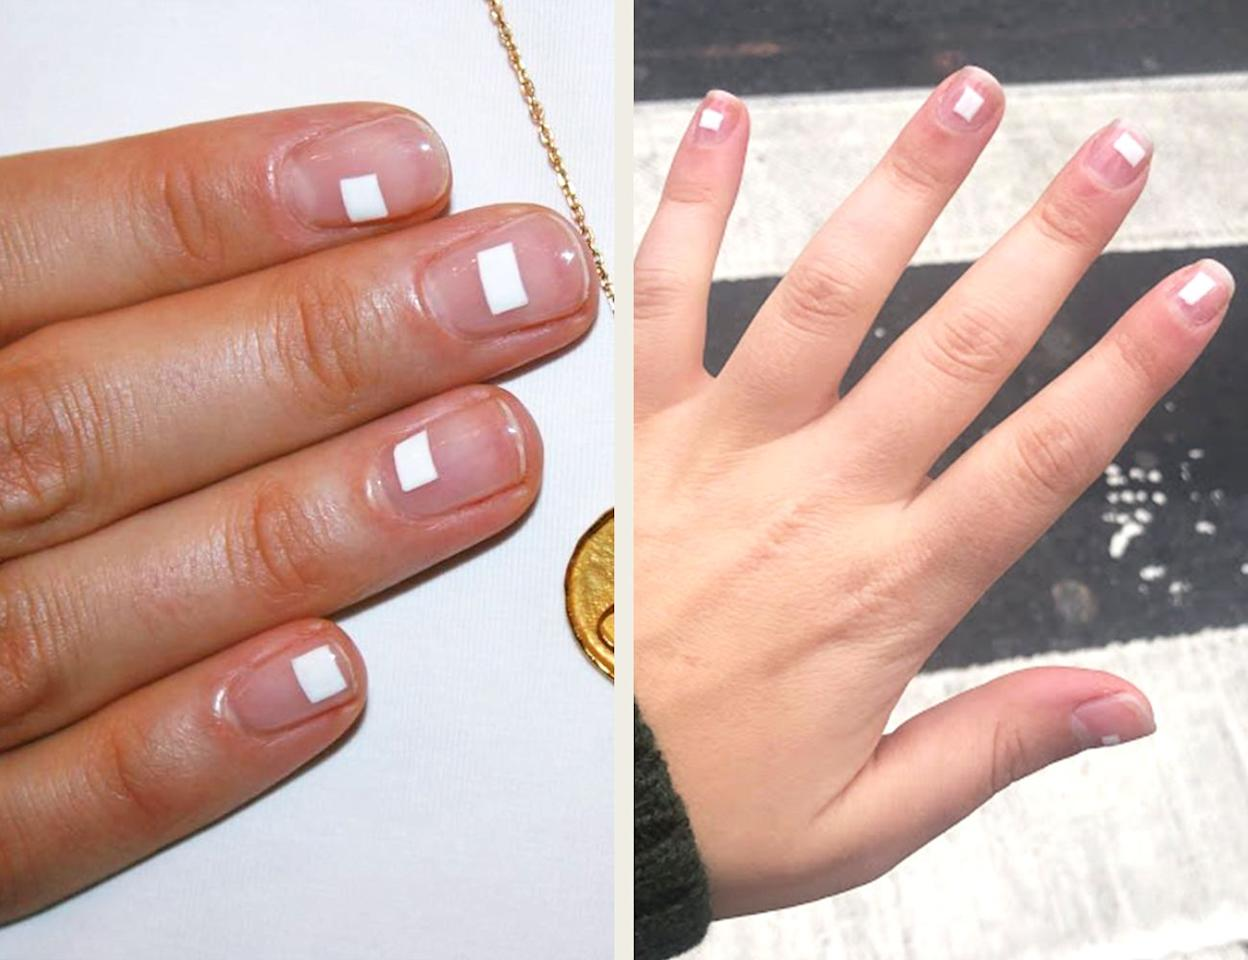 """<p>This is the style to convert even those who prefer a bare nail to a polished one. And it's the easiest to accomplish on your own! Just like how <a href=""""https://www.elle.com/beauty/makeup-skin-care/tips/g19/liquid-eyeliner-tape-trick-how-to/"""" target=""""_blank"""">Scotch tape can help perfect your eyeliner</a>, you can use it to make chic, geometric designs without worrying about being too precise. This style works best with solid, classic polish shades—Imarni did it in white, but I think it would just look good in a glossy black or classic red. </p><p><strong>How to:</strong> Tape four pieces of Scotch tape together to form the outline of a small rectangular window. It helps if you do all five (for your five fingers on each hand!) at once, so you don't have to wait for each nail to dry. Then, adhere to the tape, so the windows lay flat on your nails. Once they're flat, swipe your nail polish—I used <a href=""""https://tenoverten.com/products/034-white"""" target=""""_blank"""">Tenoverten's White</a>—over the top. You don't have to be careful about your application technique since the tape acts as a shield for the negative space. Once they're dry, peel off the tape and cover with topcoat. </p><p><em>Inspired by: <a href=""""https://www.instagram.com/p/BmX-GJAgT4u/"""" target=""""_blank"""">Imarni Nails</a></em></p>"""